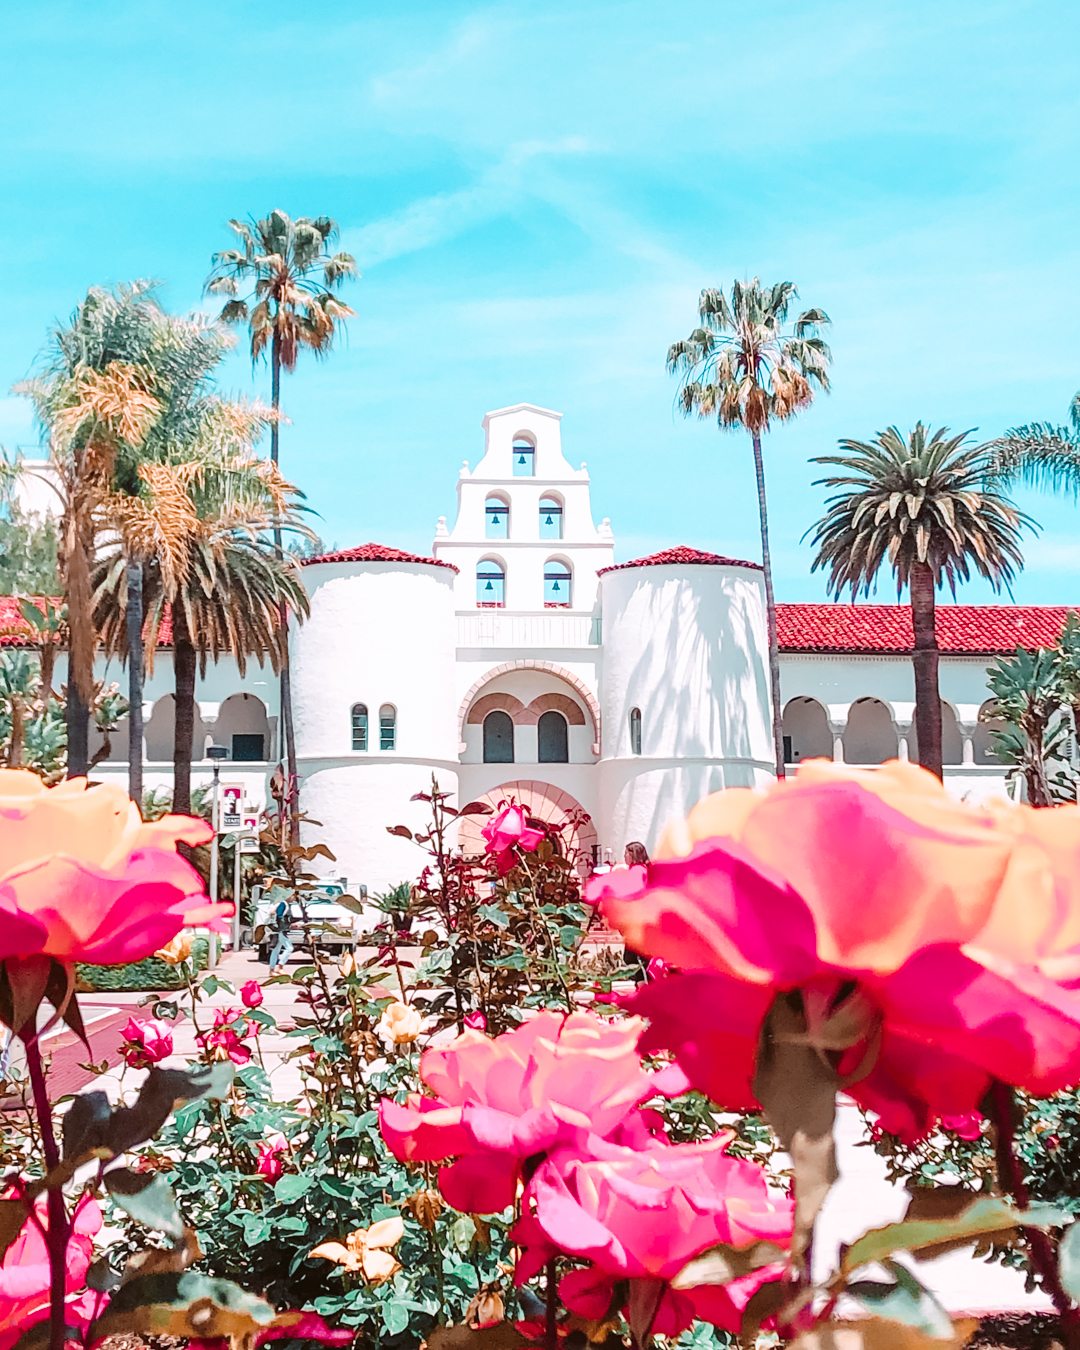 Instagrammable flowers and palm trees at University of San Diego